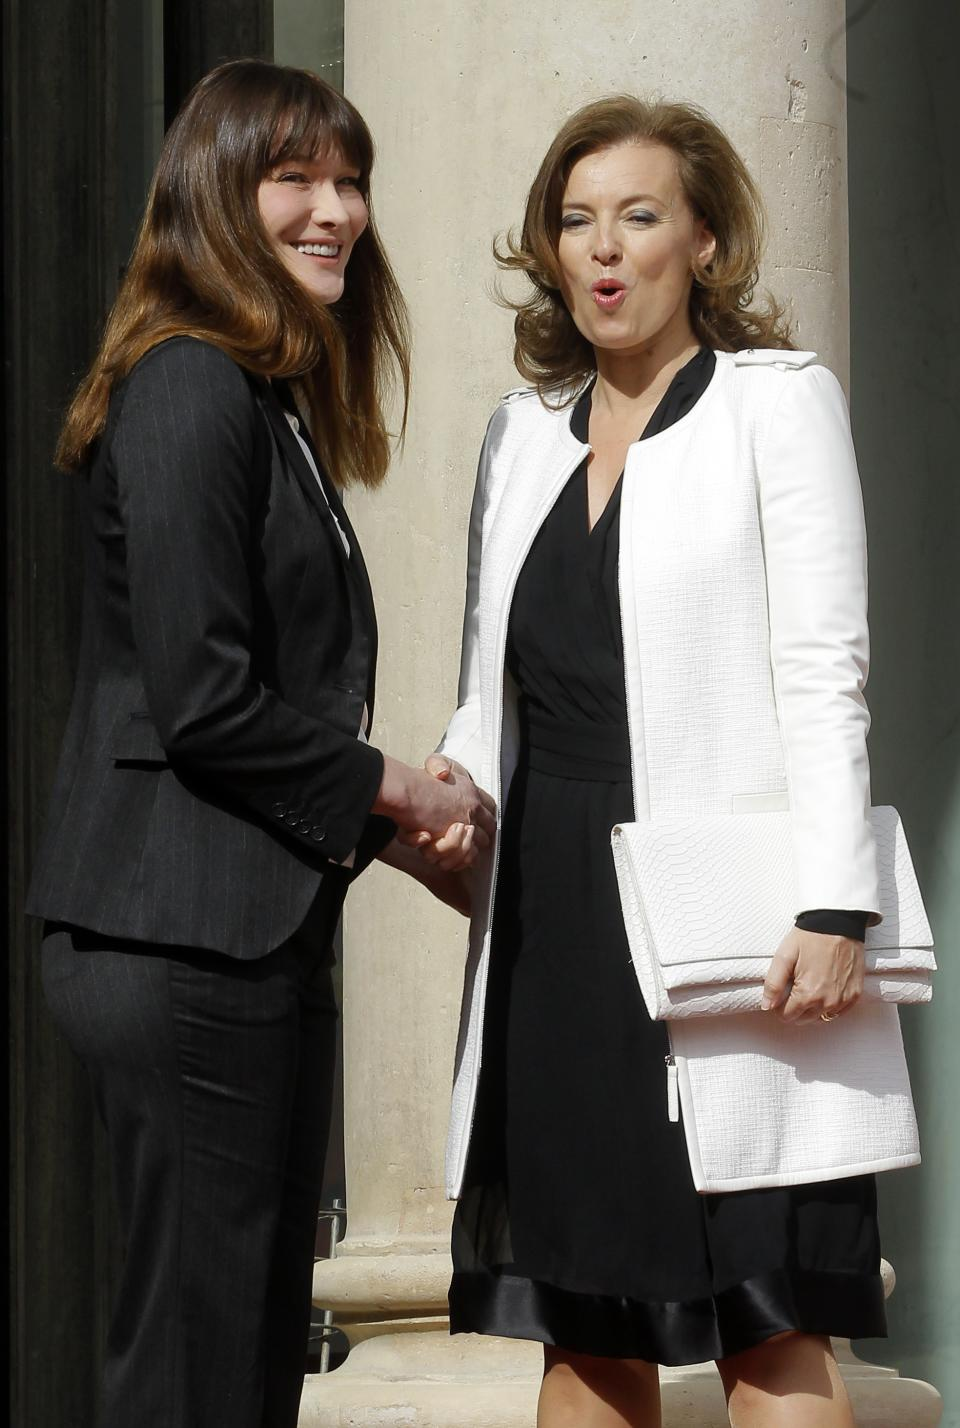 French President-elect Francois Hollande's companion Valerie Trierweiler, right, shakes hands with outgoing President Nicolas Sarkozy's wife Carla Bruni-Sarkozy before the presidential handover ceremony, Tuesday, May 15, 2012 at the Elysee Palace in Paris.  (AP Photo/Jacques Brinon)